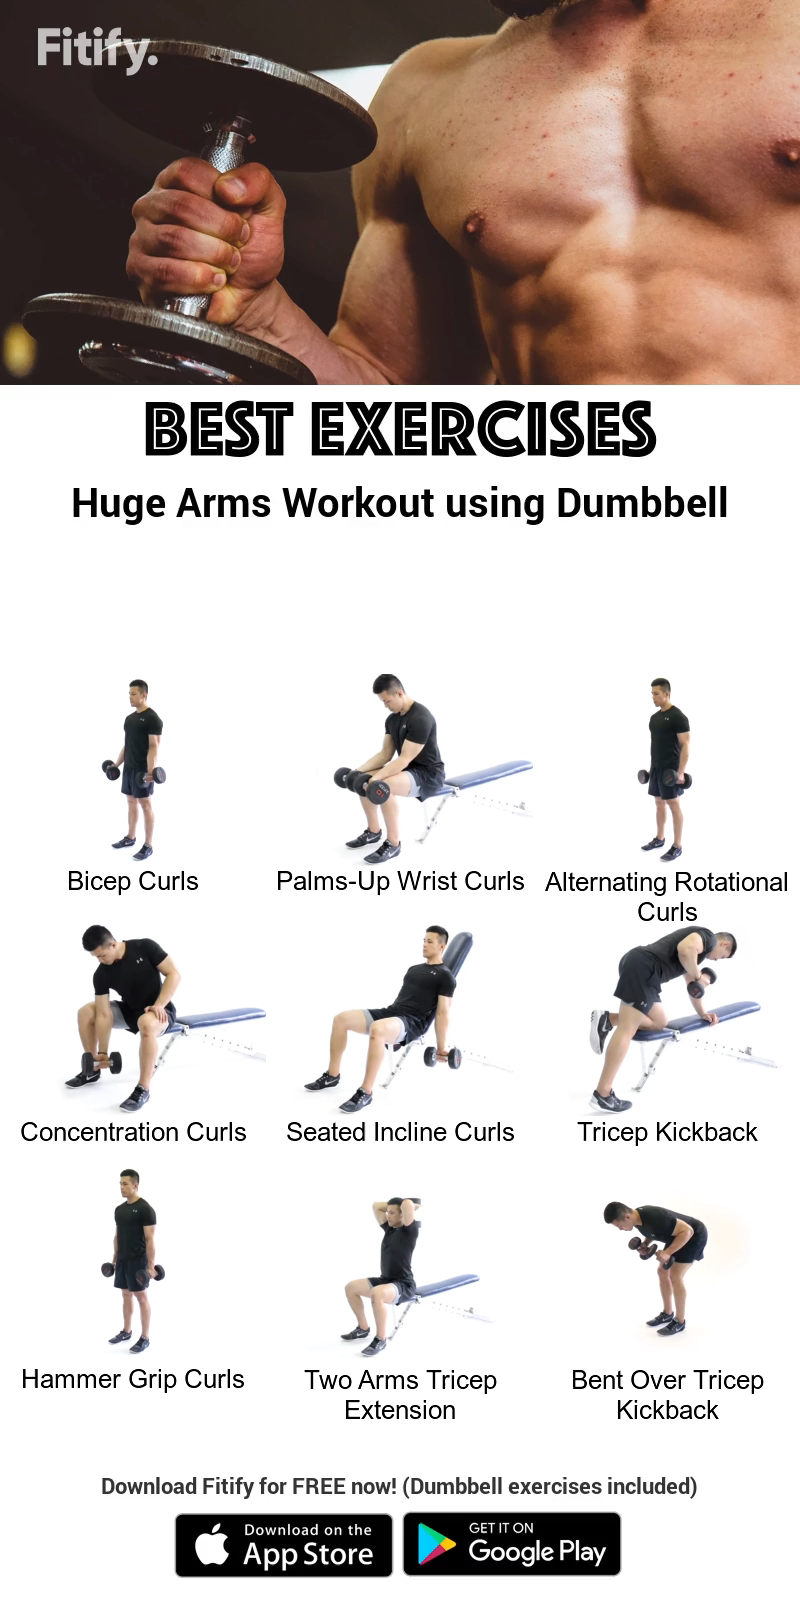 Dumbbell Arms Workout by Fitify #dumbbellexercises